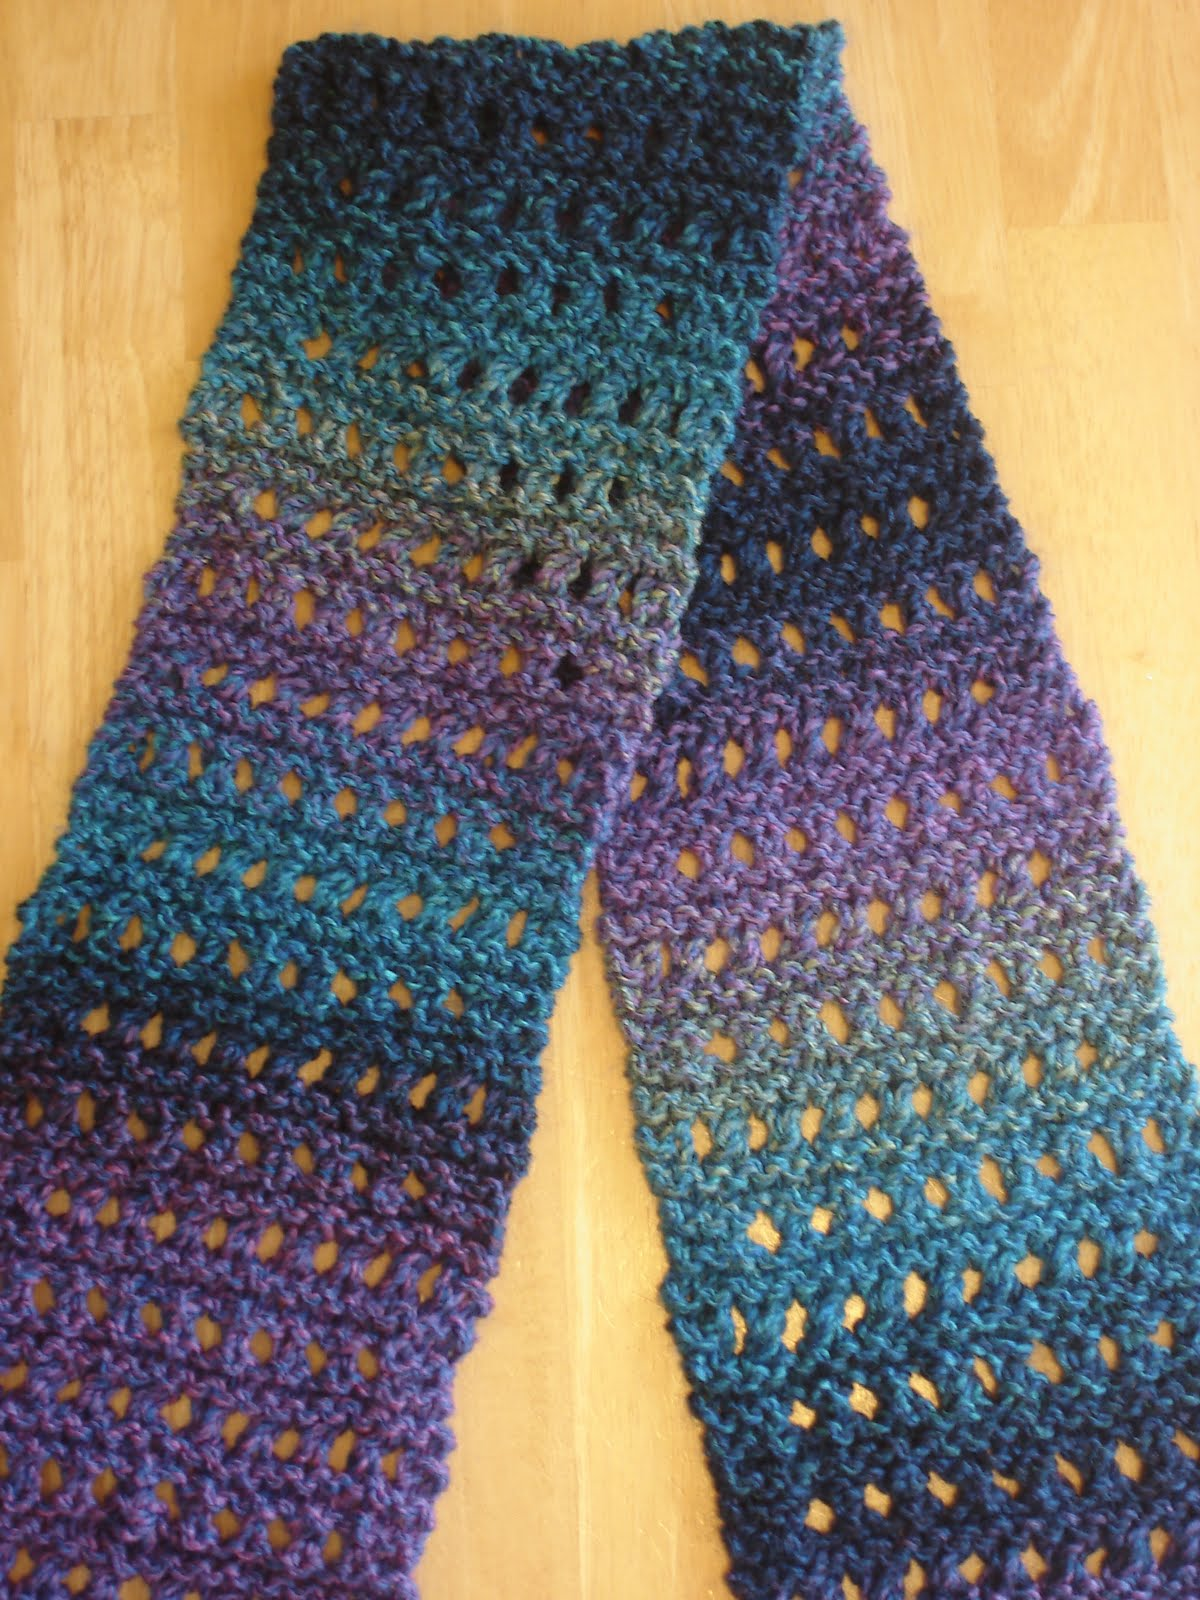 Knitting Pattern Of Scarf : Fiber Flux: Free Knitting Pattern: Tweedy Eyelet Scarf!